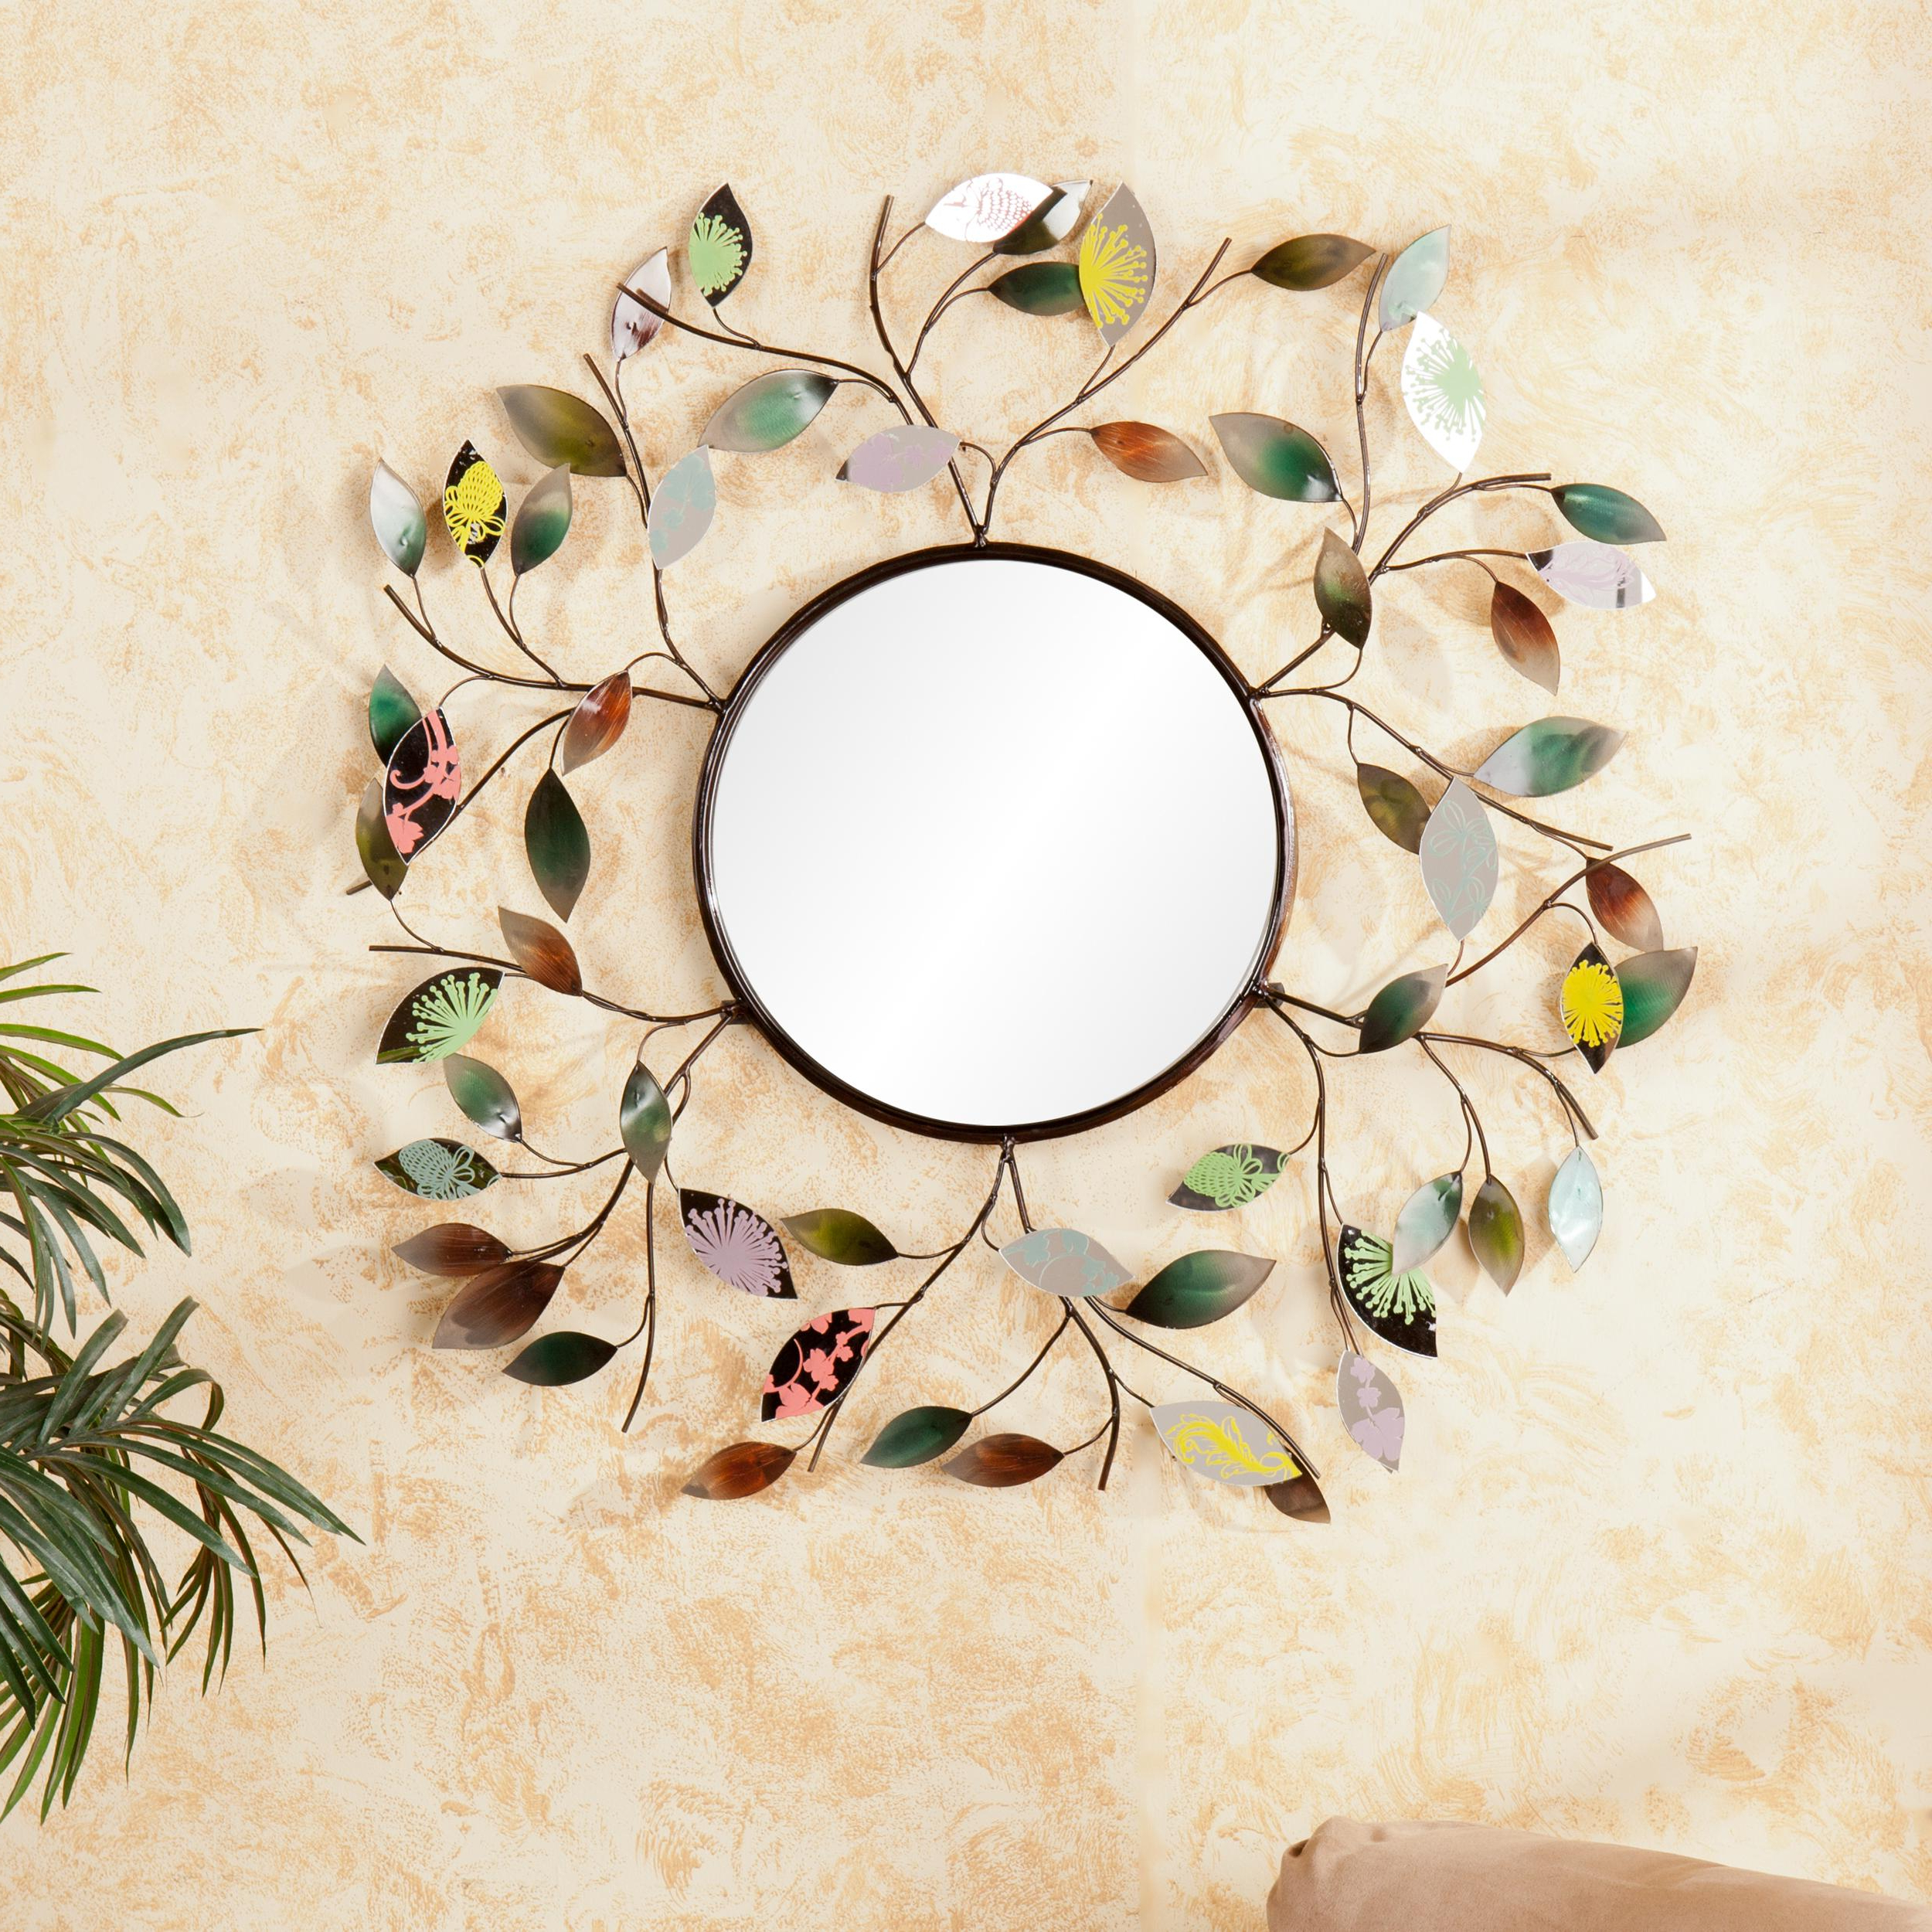 Decorative Round Wall Mirrors Pertaining To Current Decorative Metallic Leaf Wall Mirror – 3d Leaf Hanging Art – Multicolored Eclectic Style (View 18 of 20)